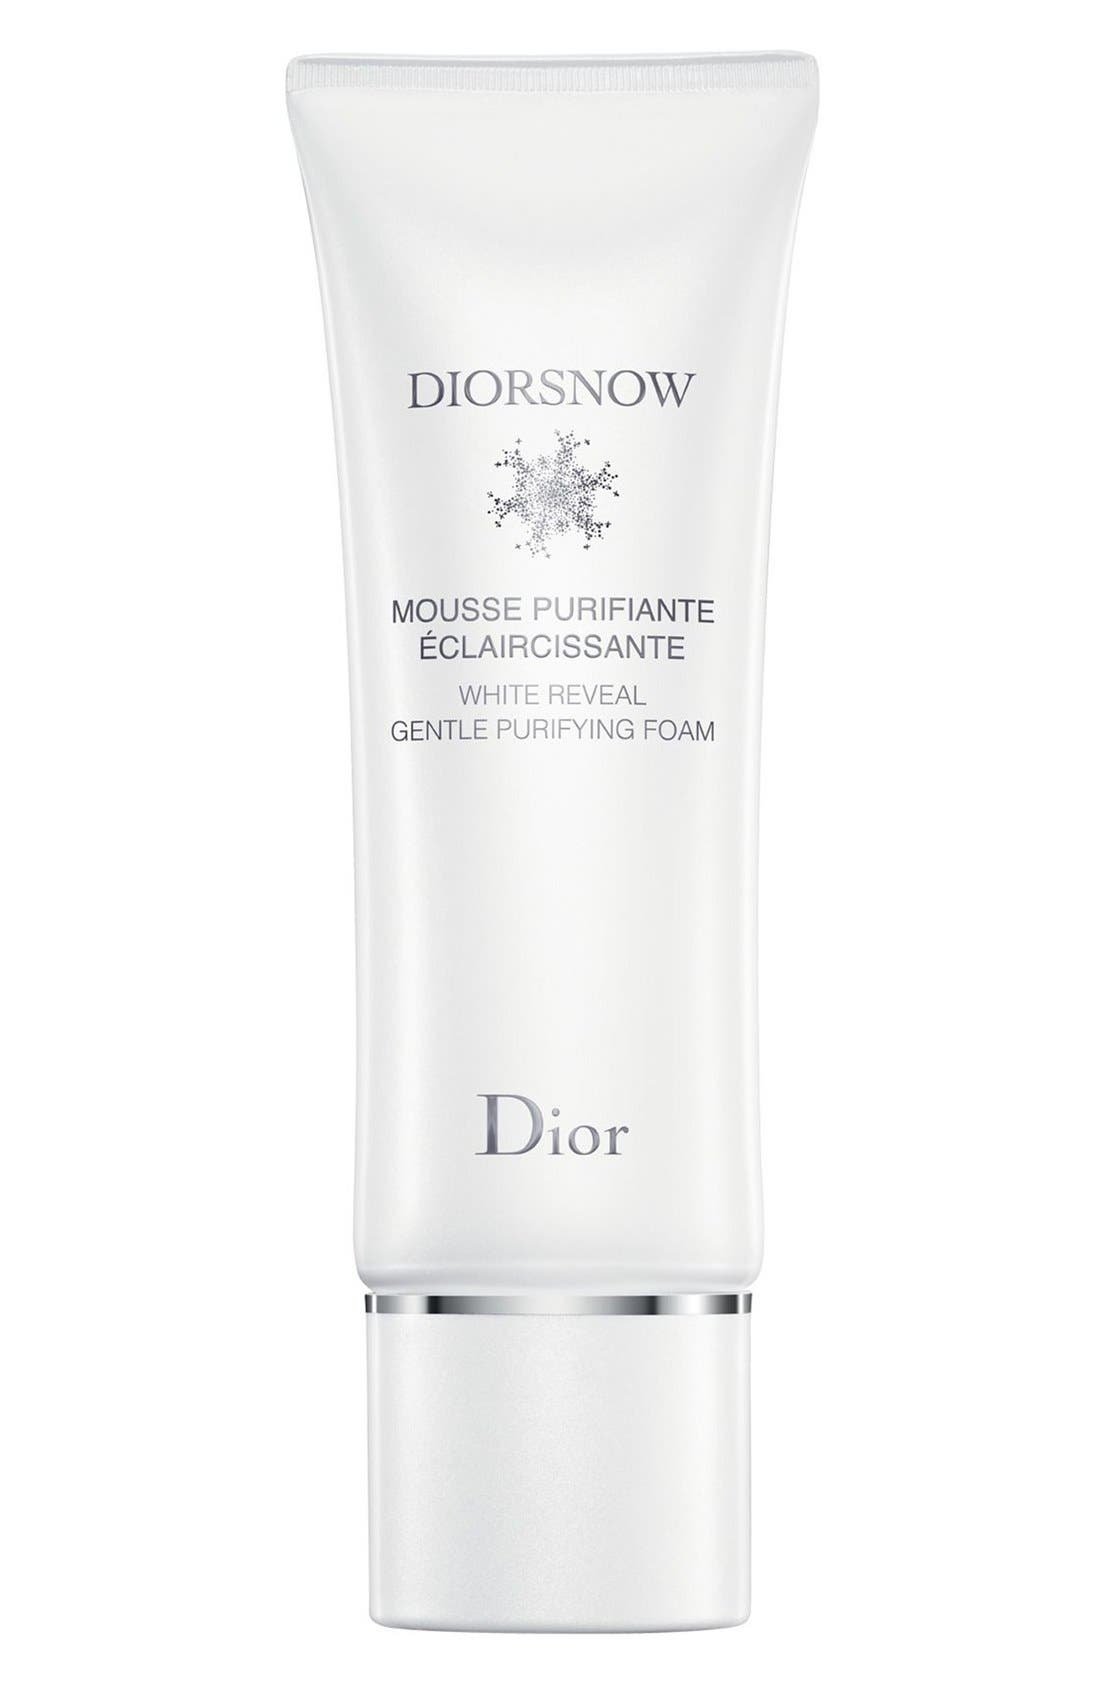 Diorsnow White Reveal Gentle Purifying Foam   Nordstrom